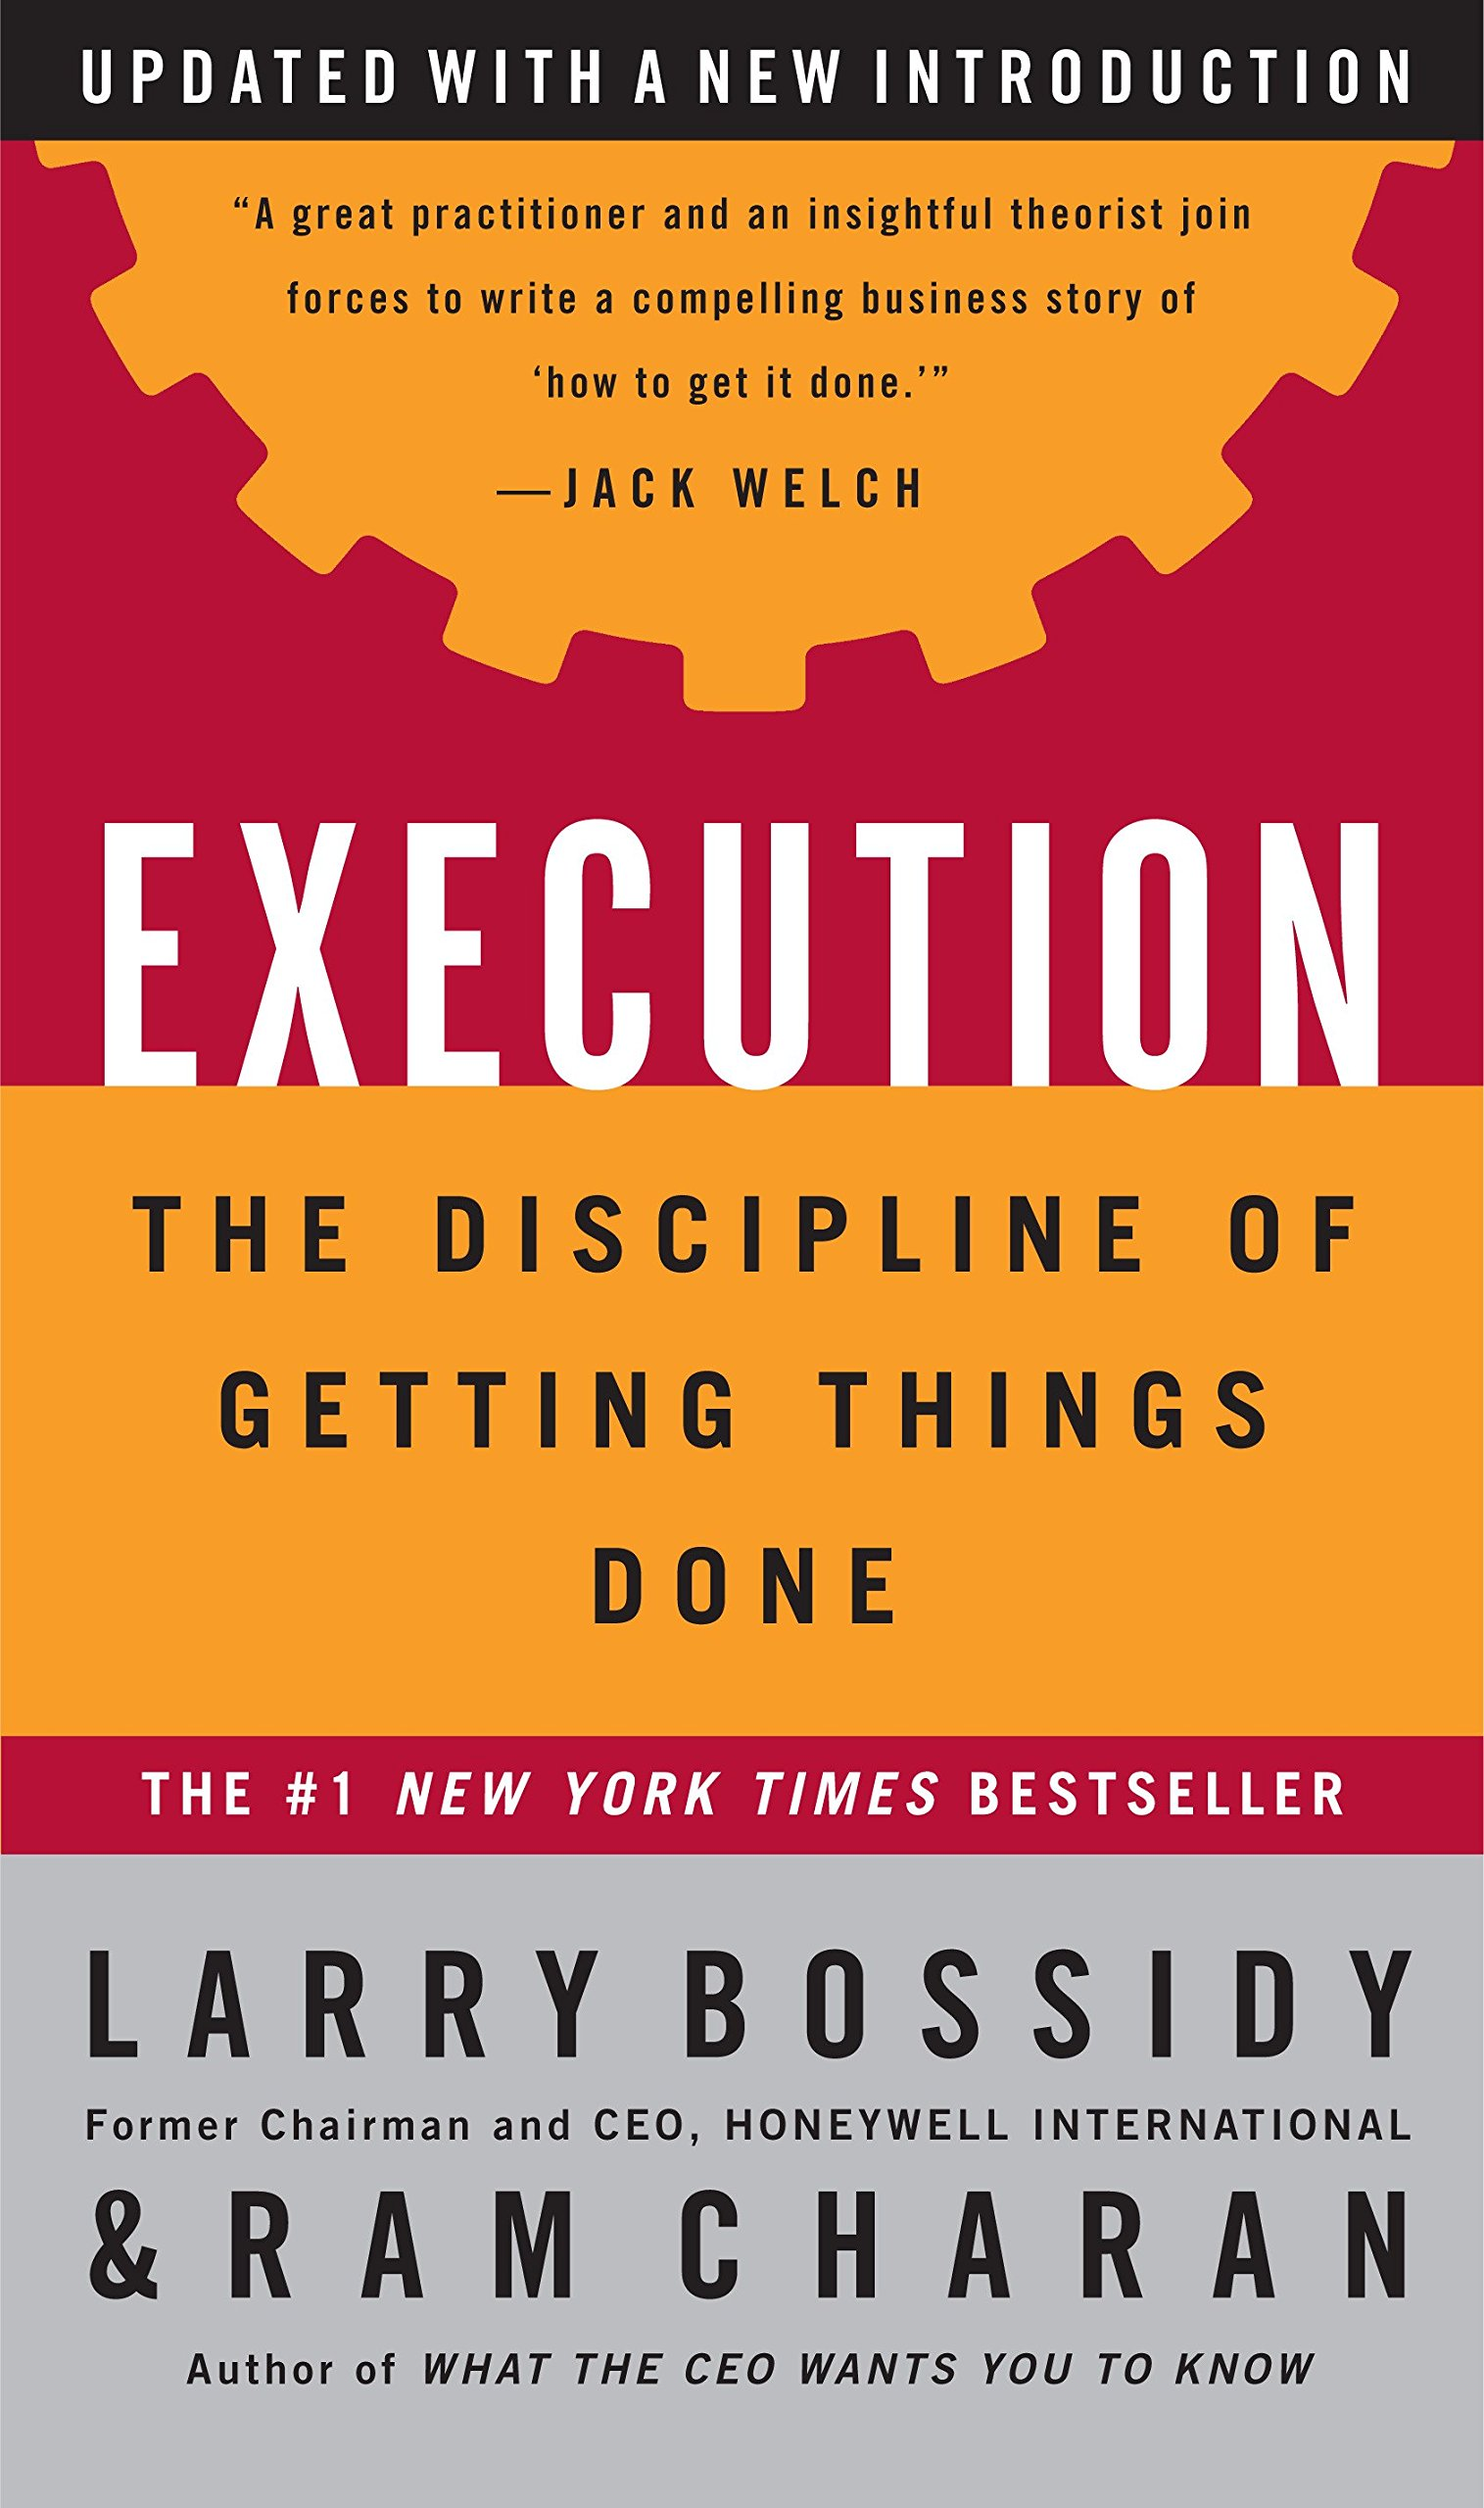 Execution The Discipline Of Getting Things Done Larry Bossidy Ram